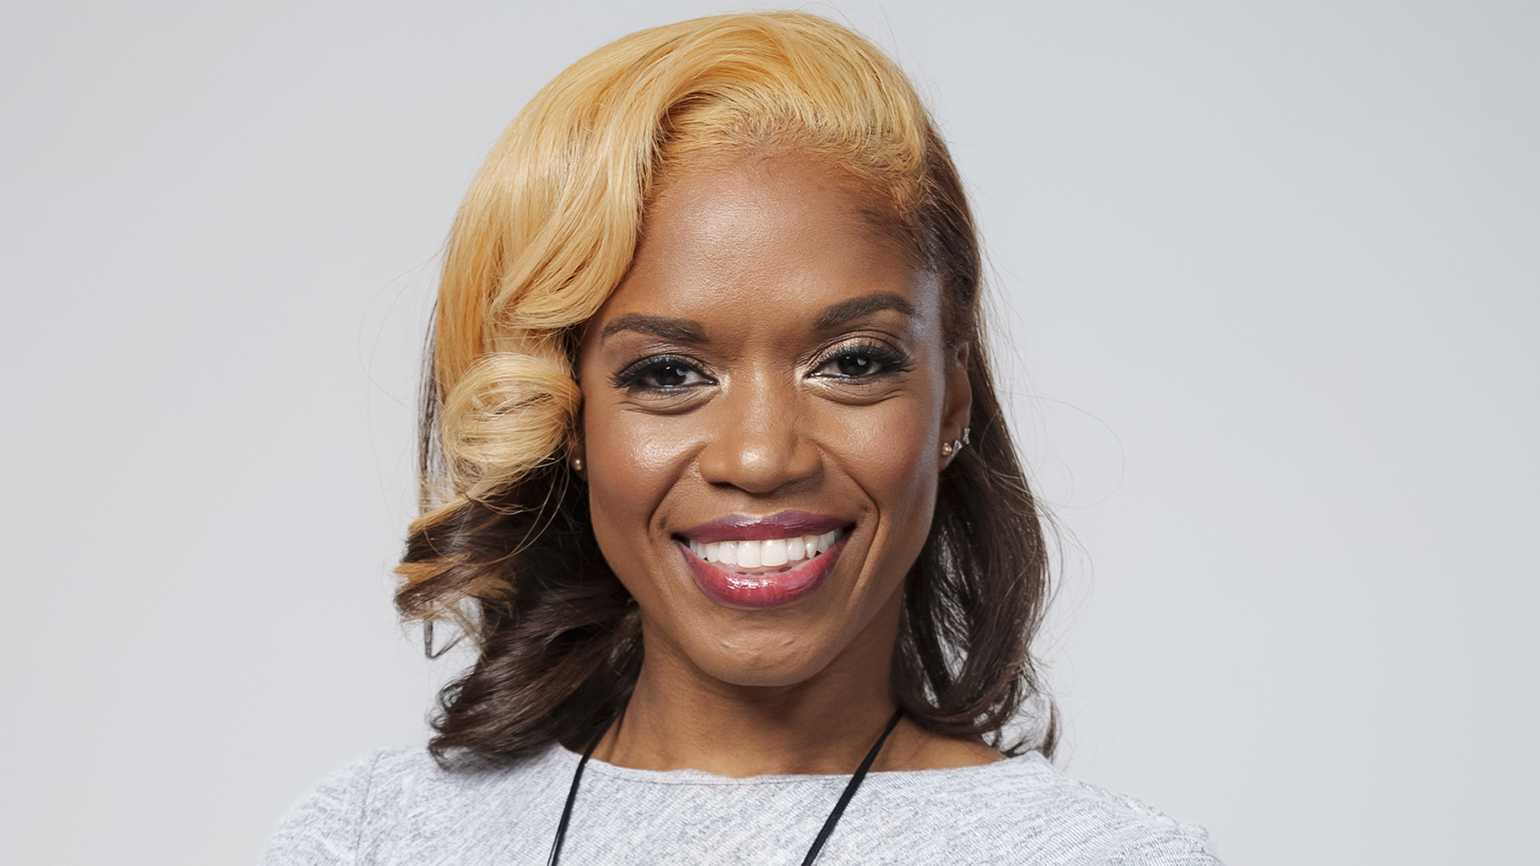 Ty'Ann Brown, Guideposts' Vice President of Ministries; photo by Todd Plitt